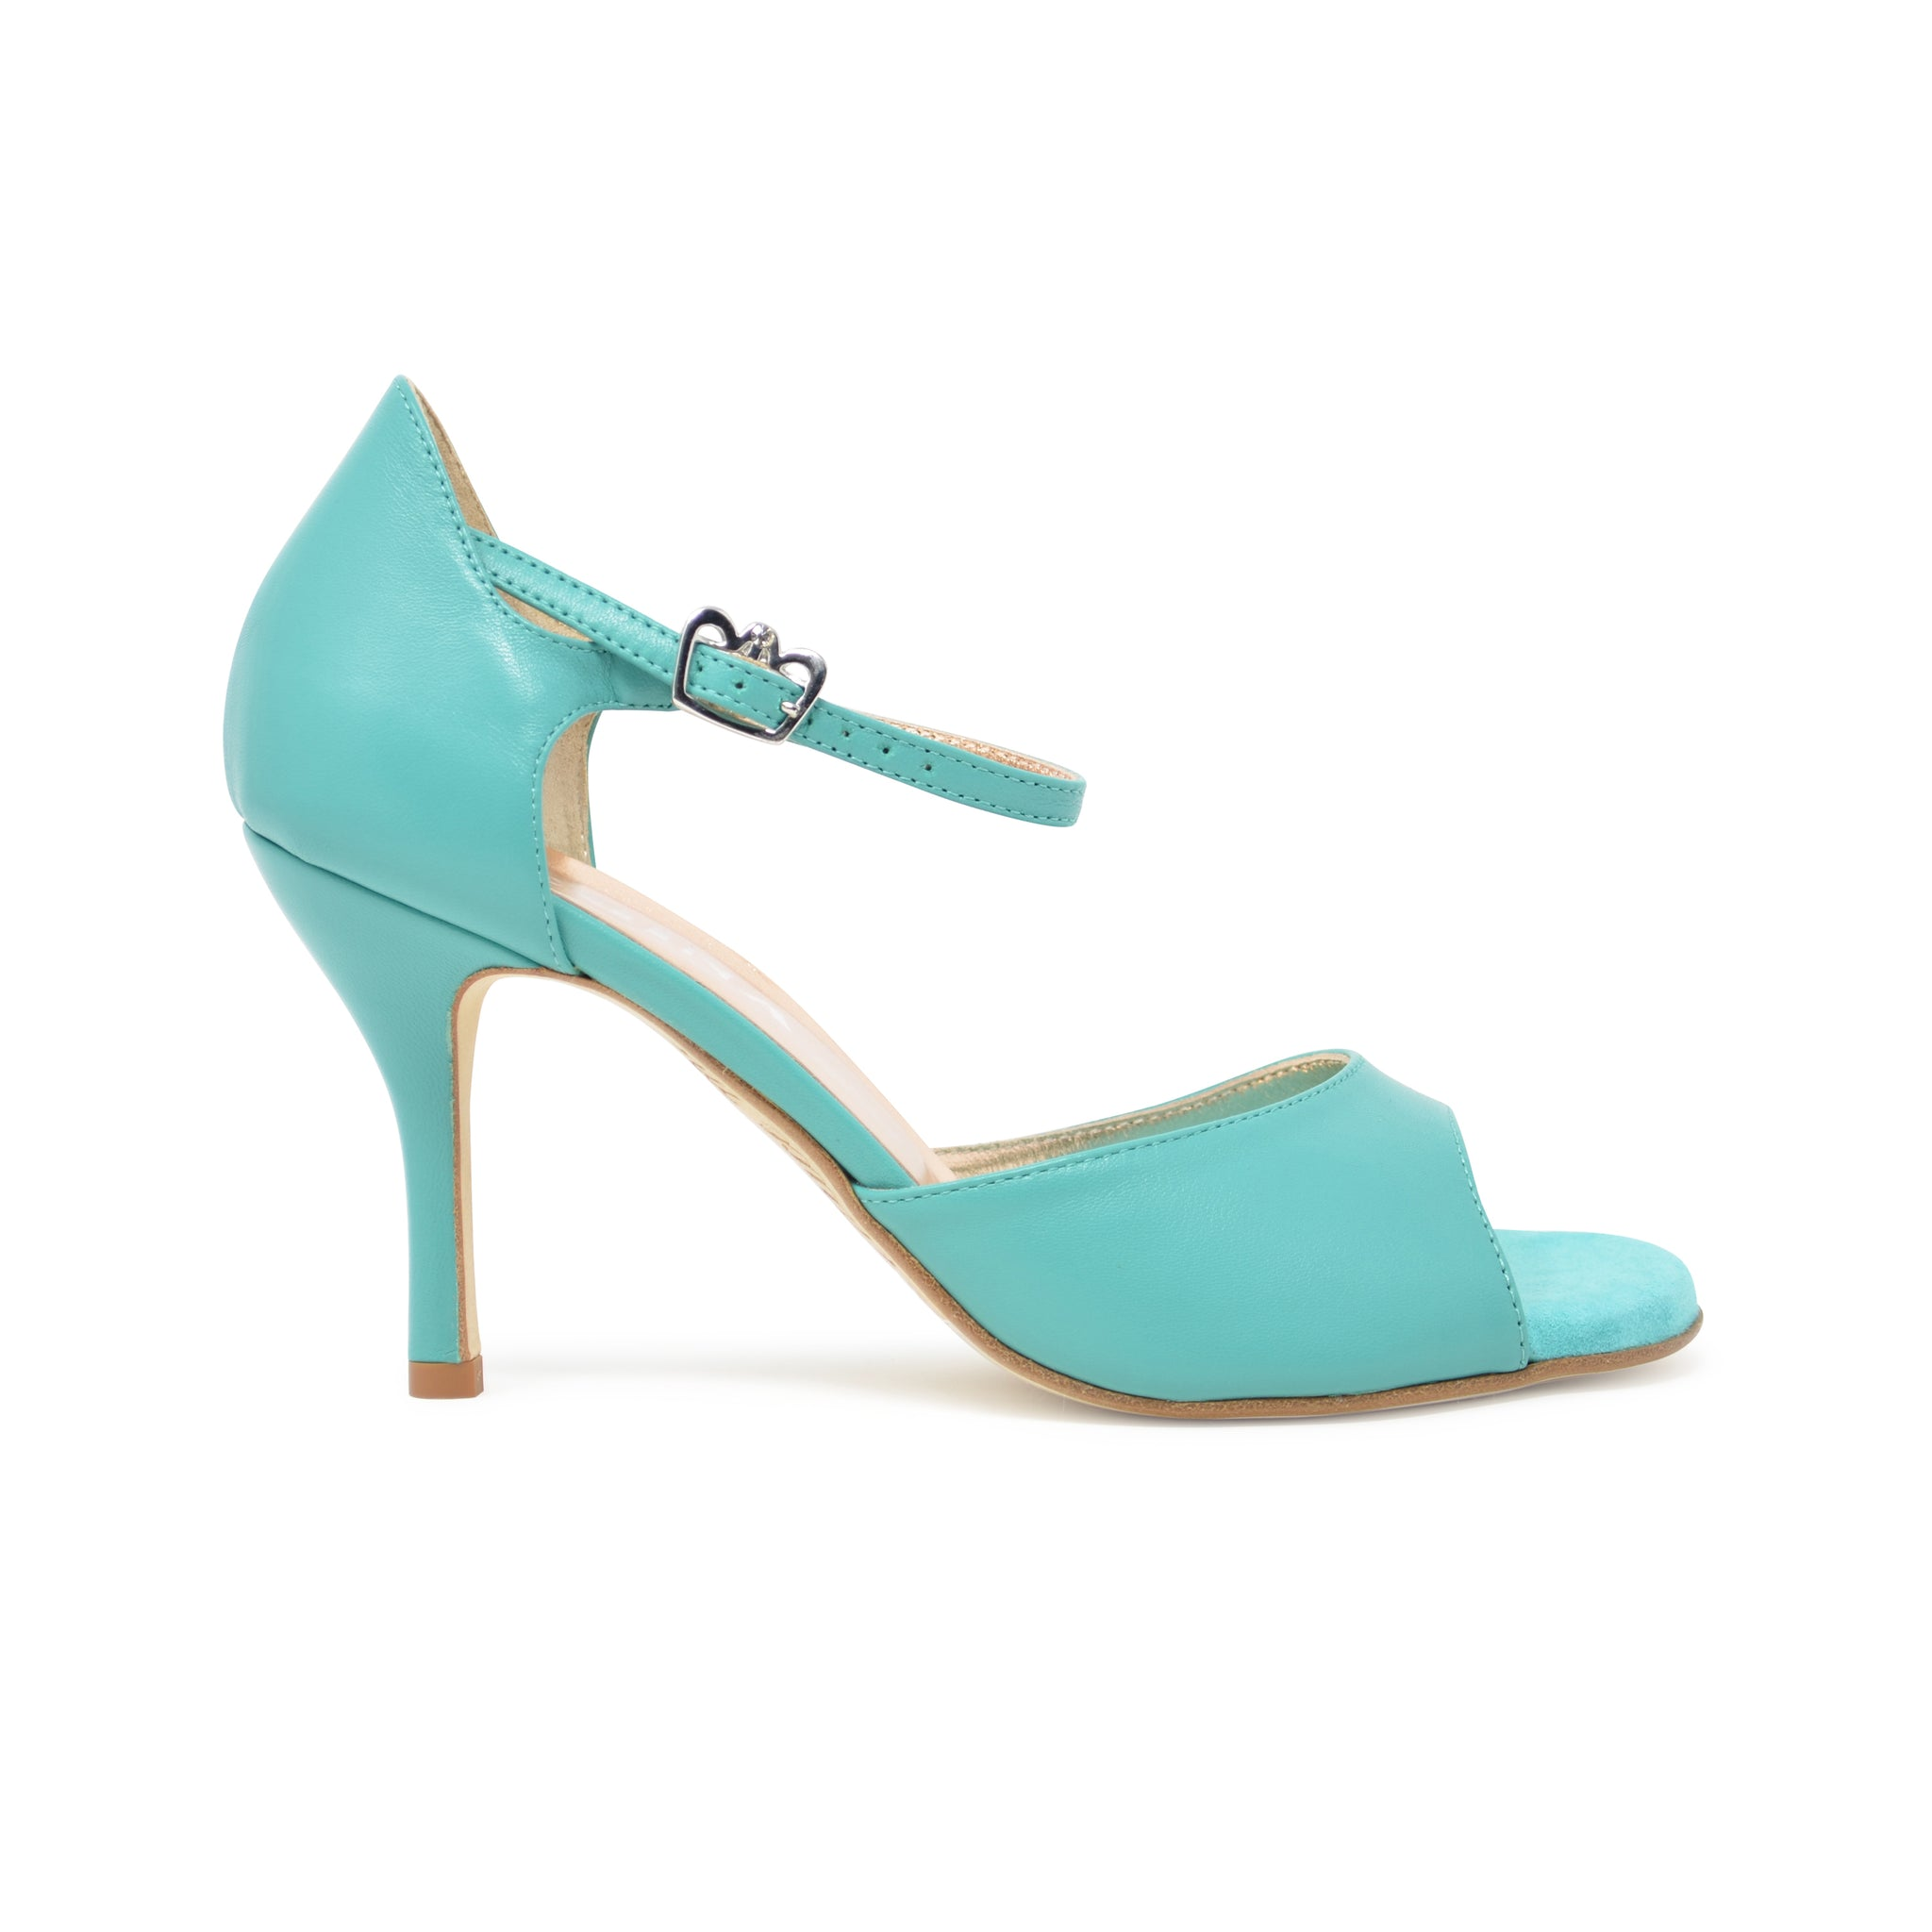 Size 8 - California in Turquoise Leather - Regina